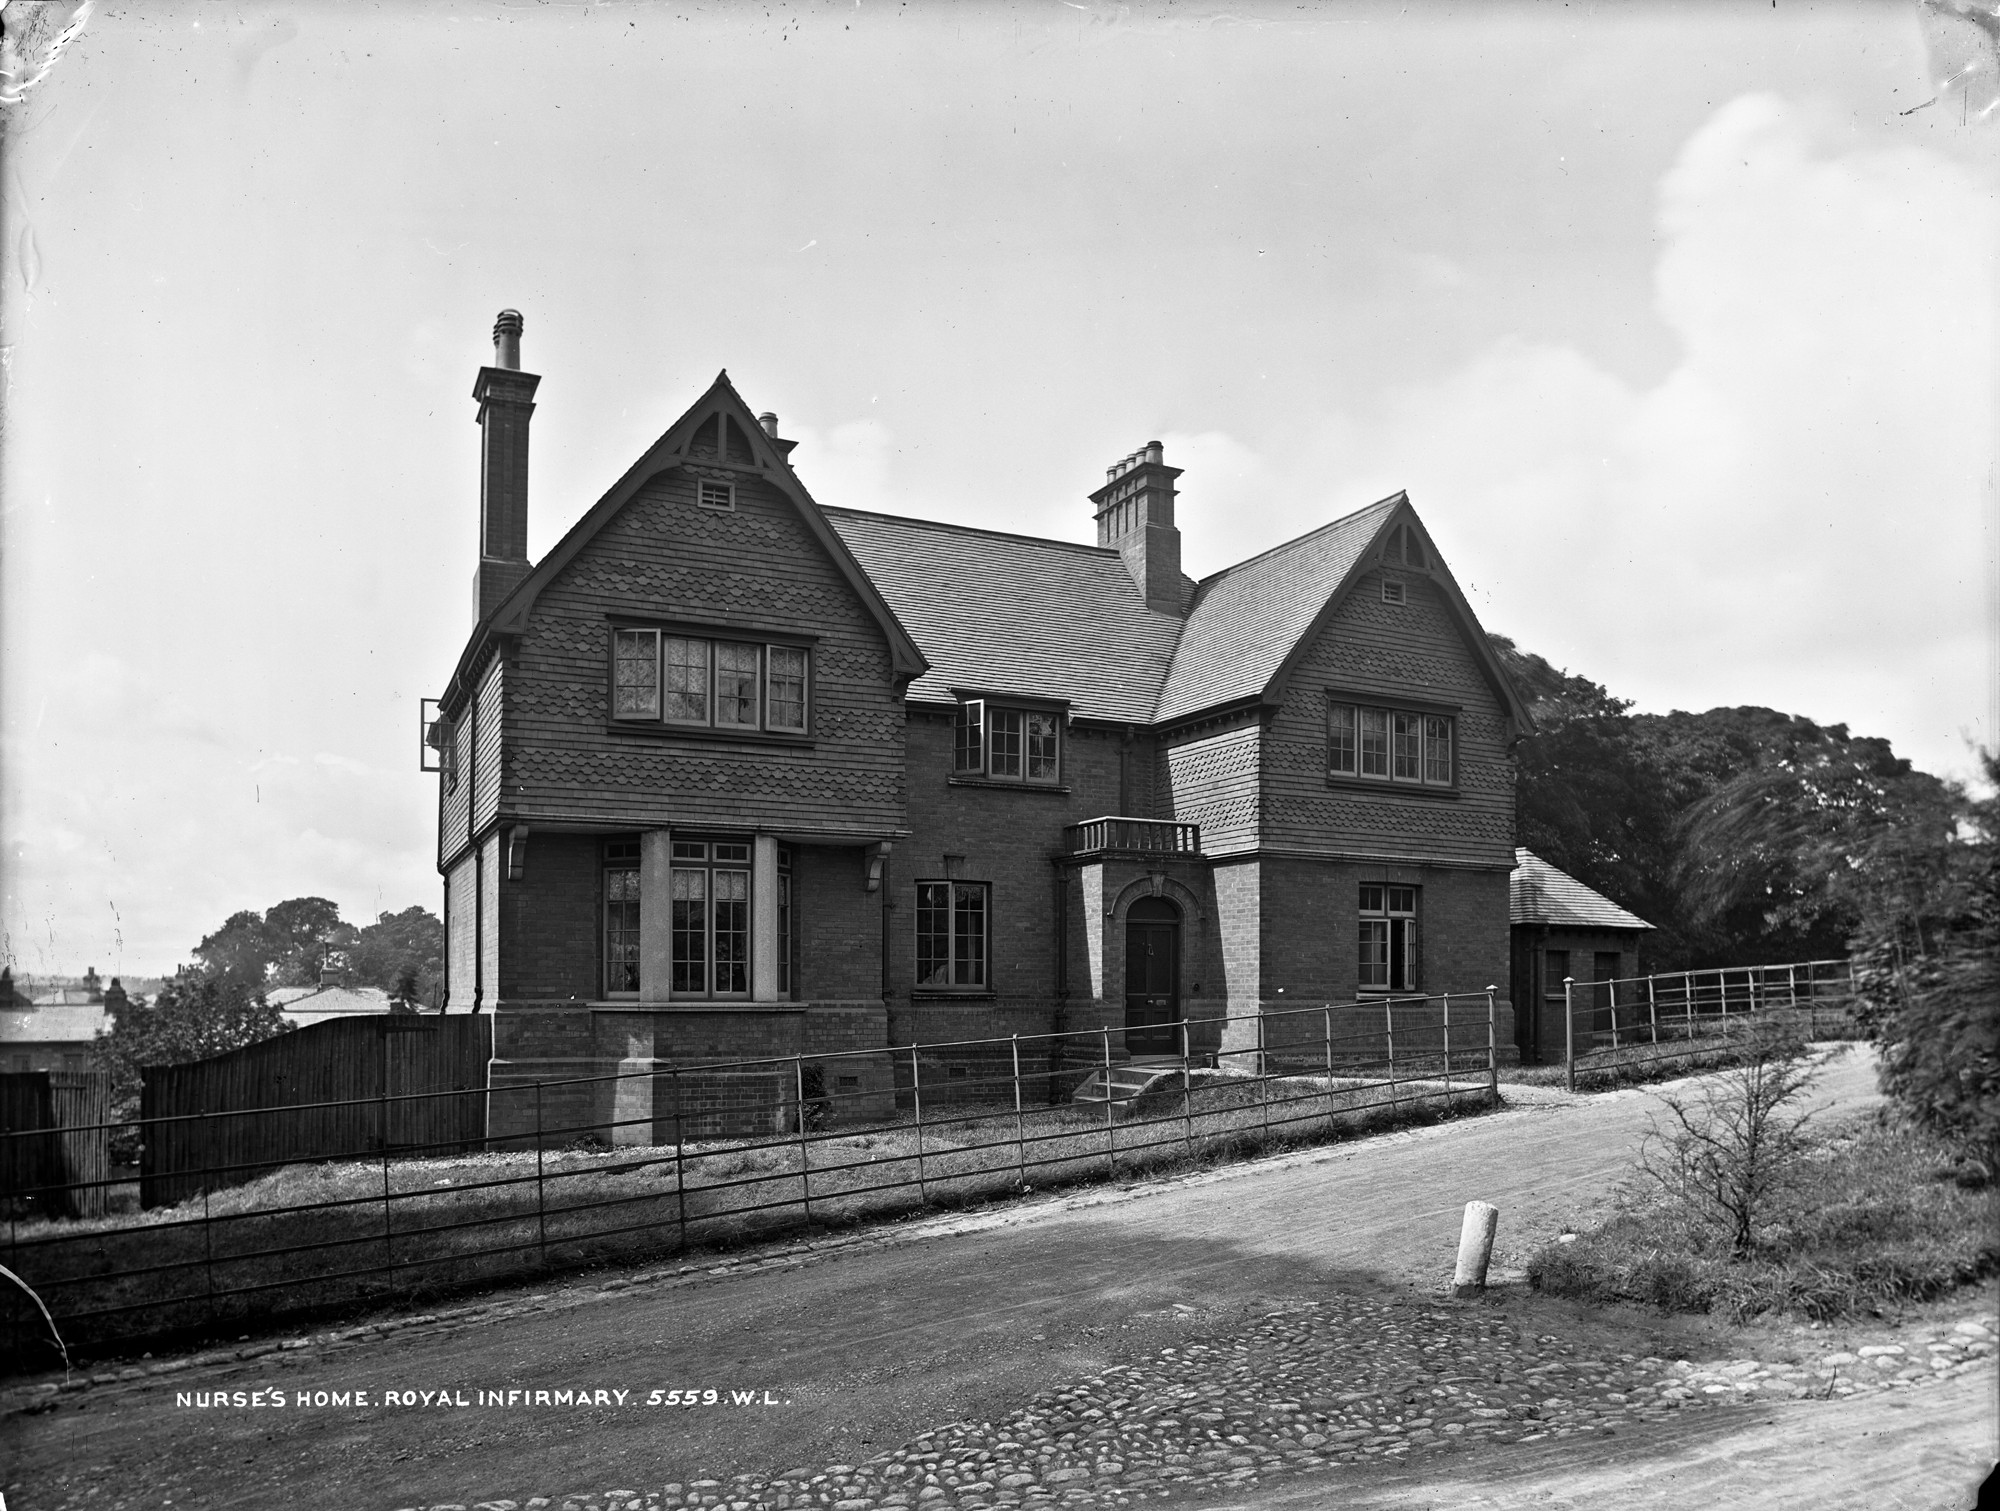 Nurses home on a steep hill